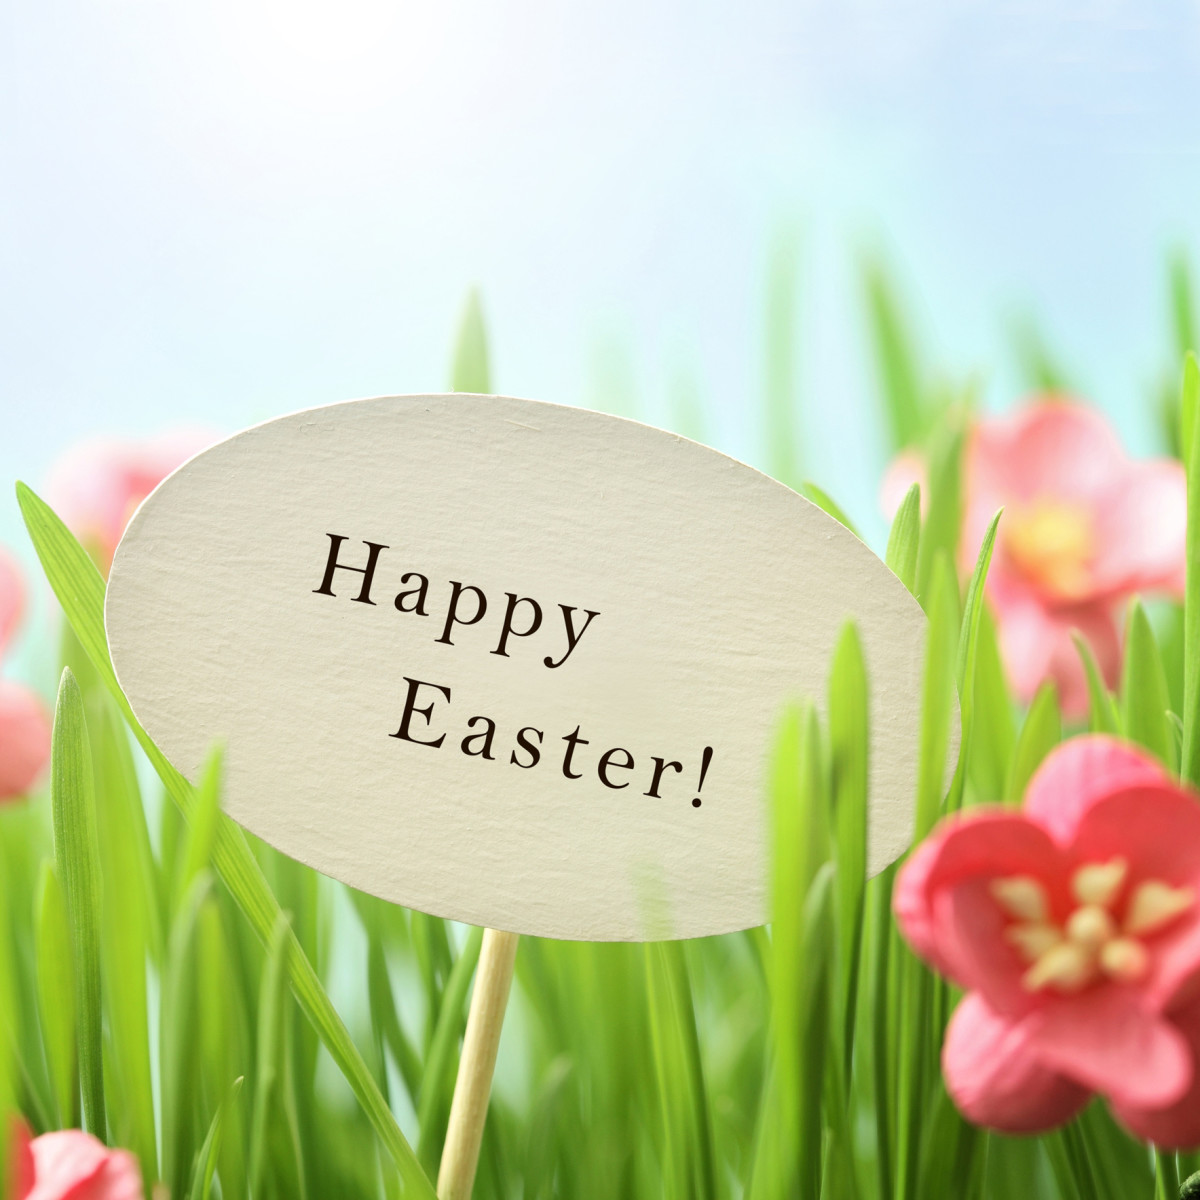 7 Religious Easter Speeches, Messages, & Poems